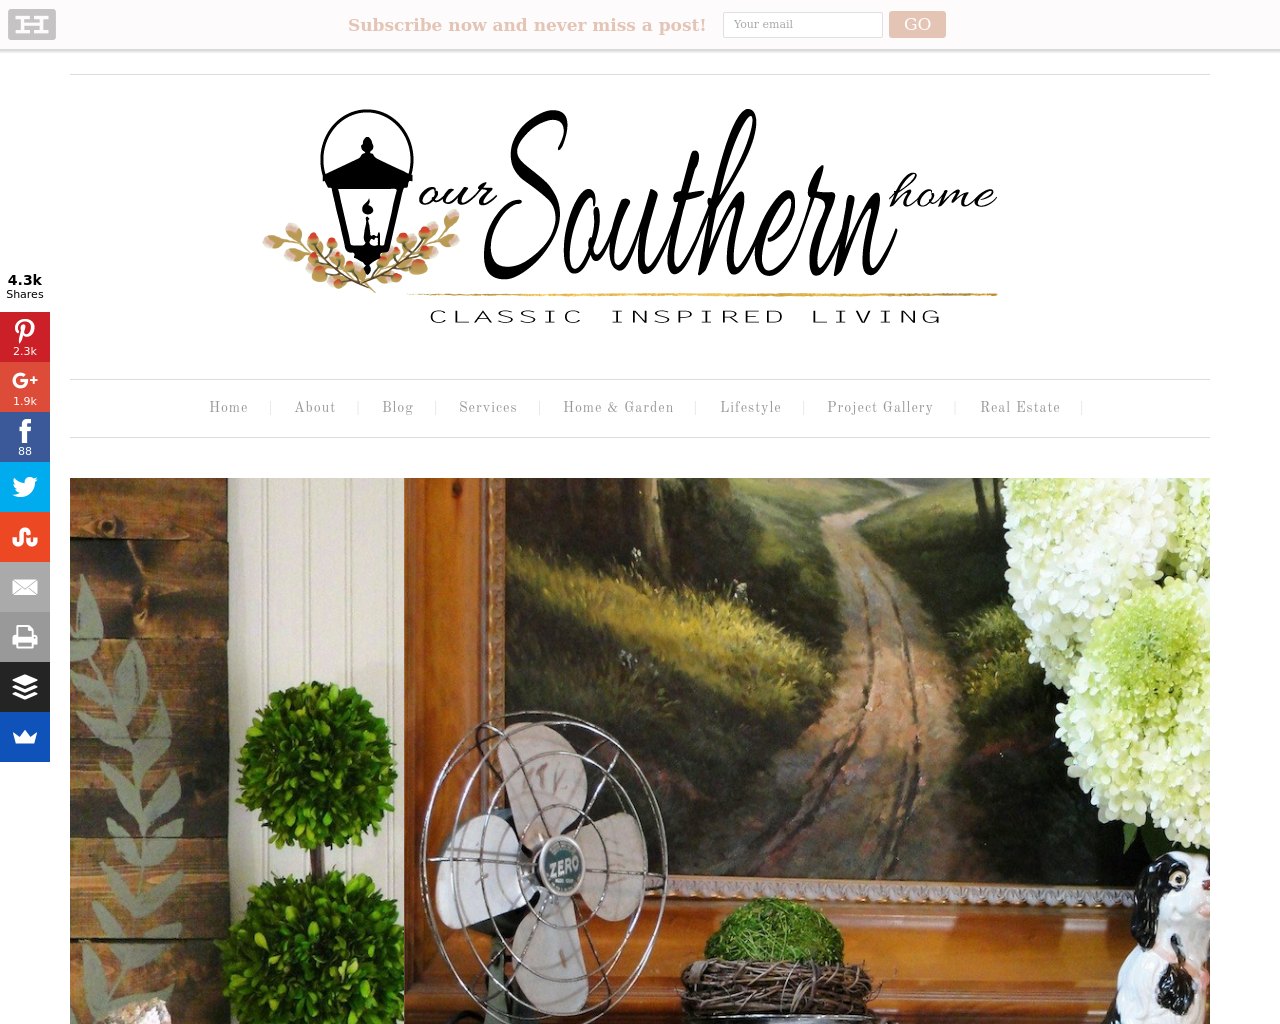 Our-Southern-Homes-Advertising-Reviews-Pricing